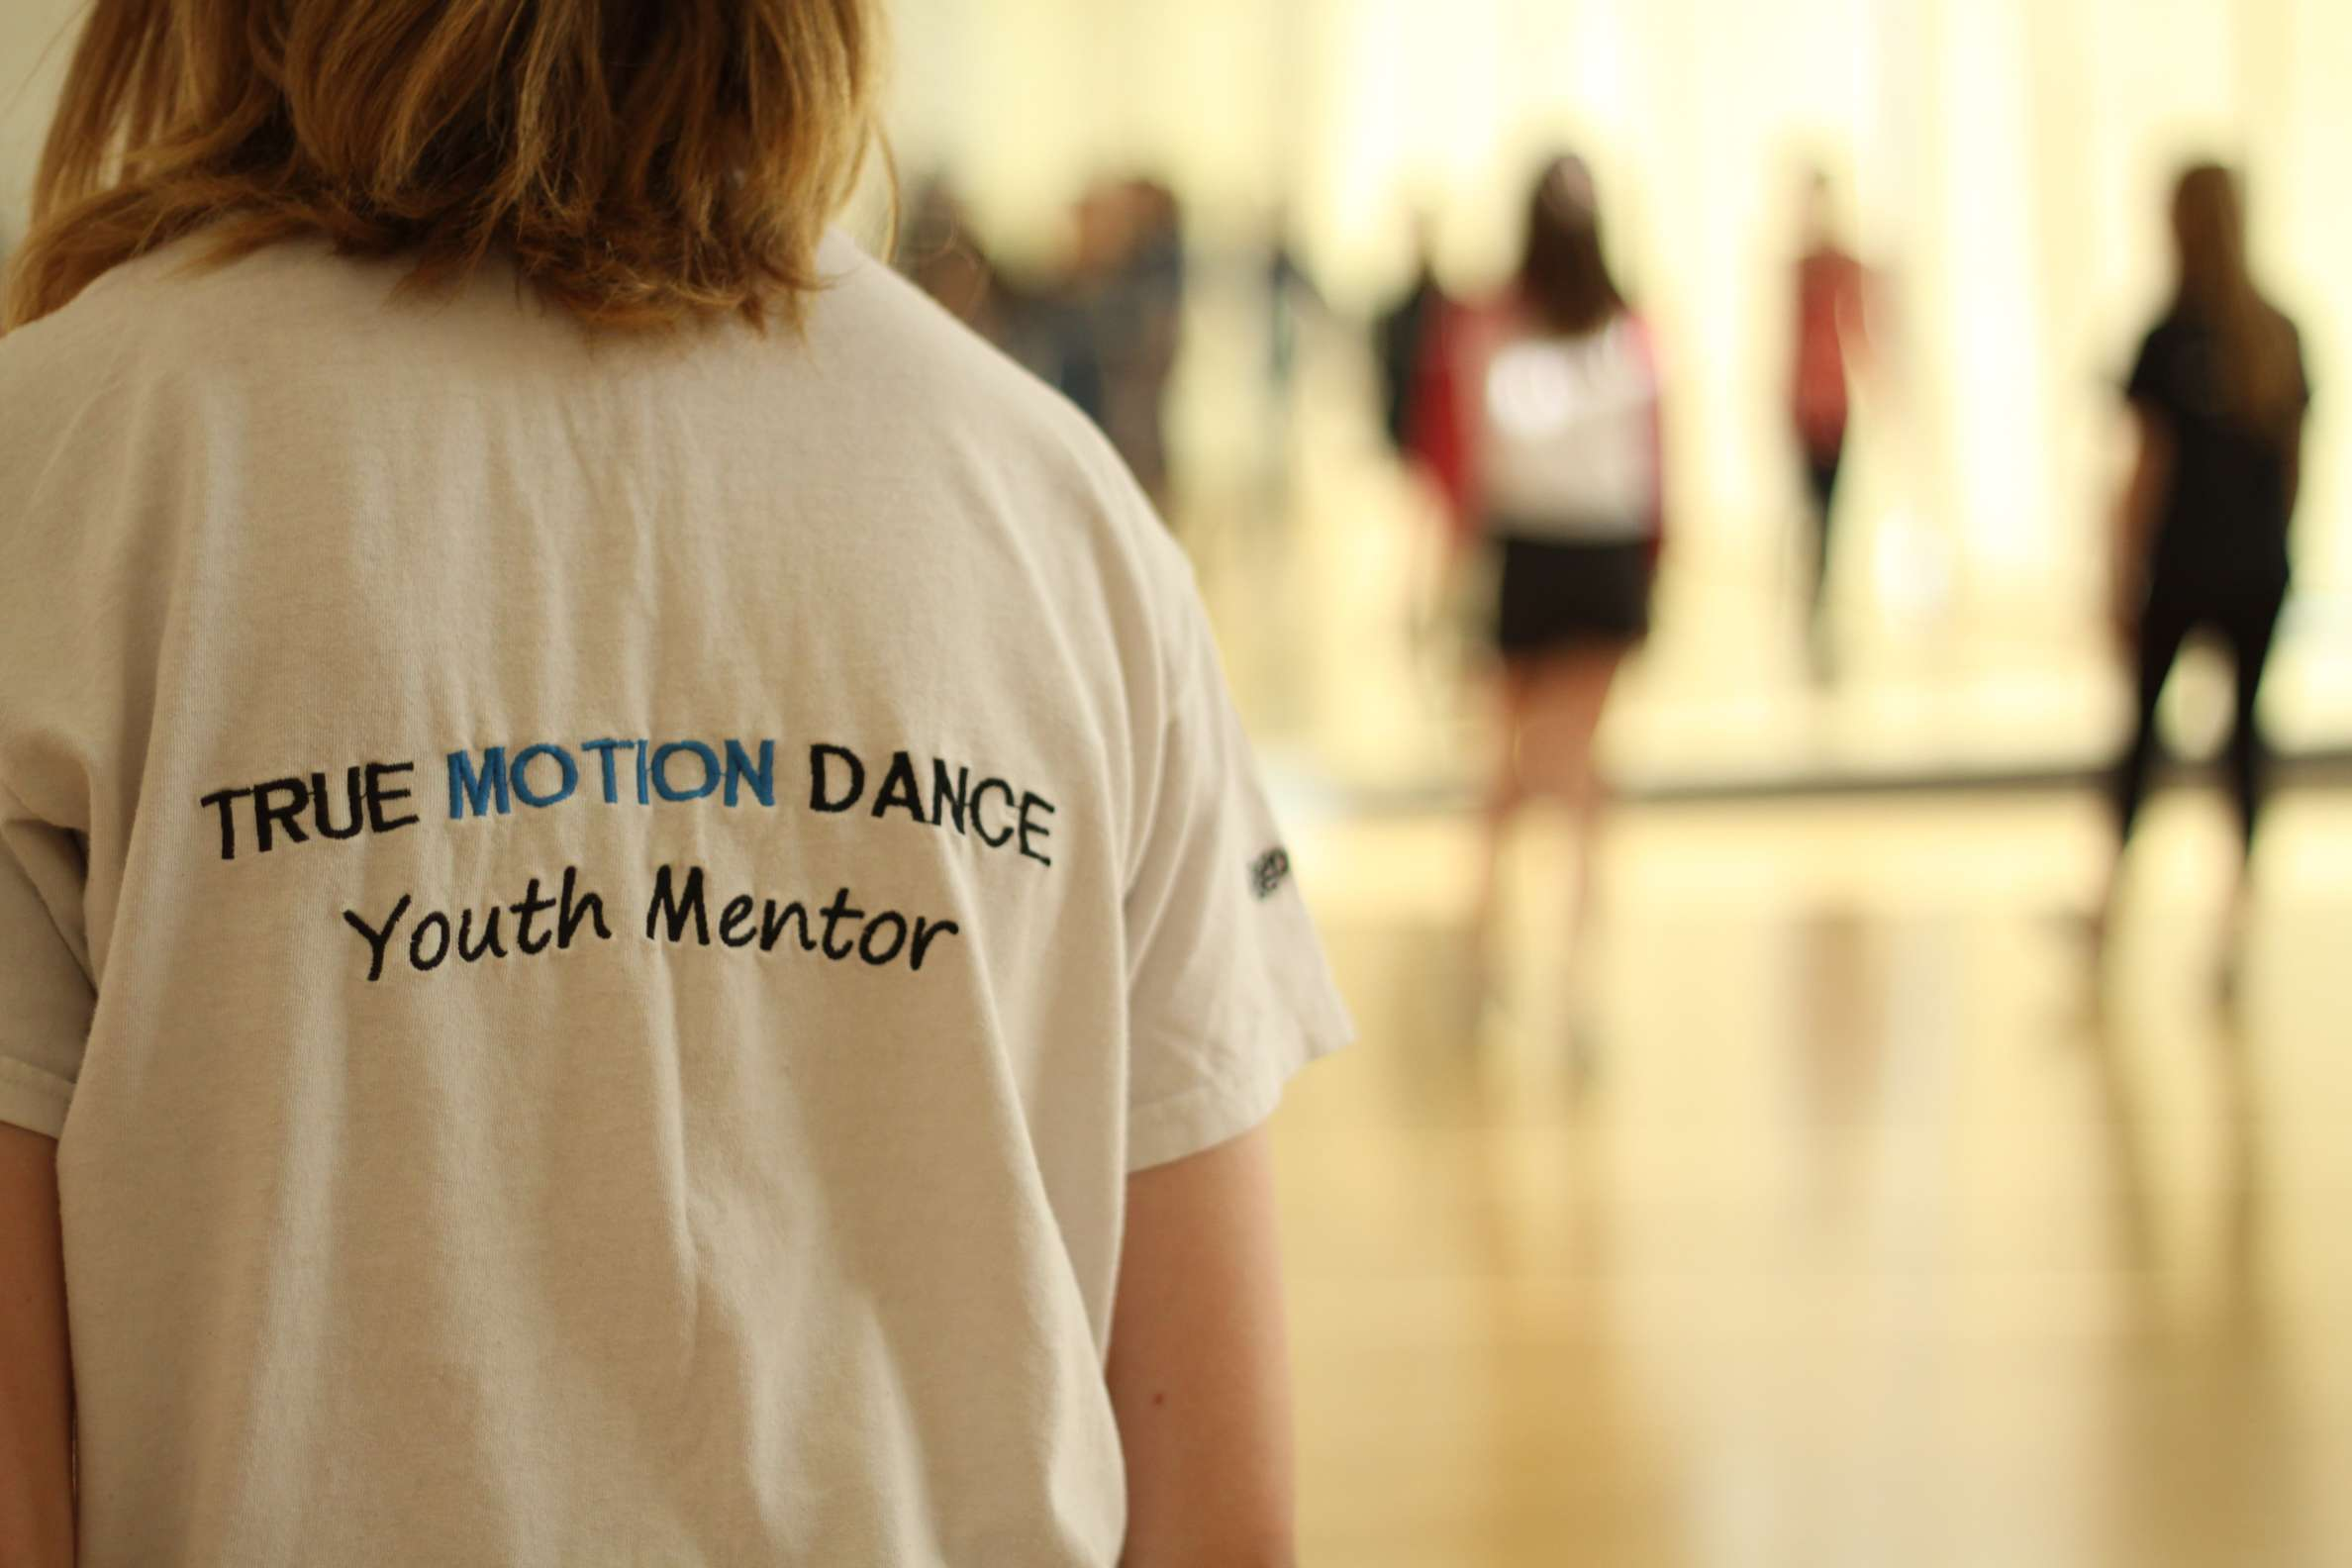 Youth mentor in dance class